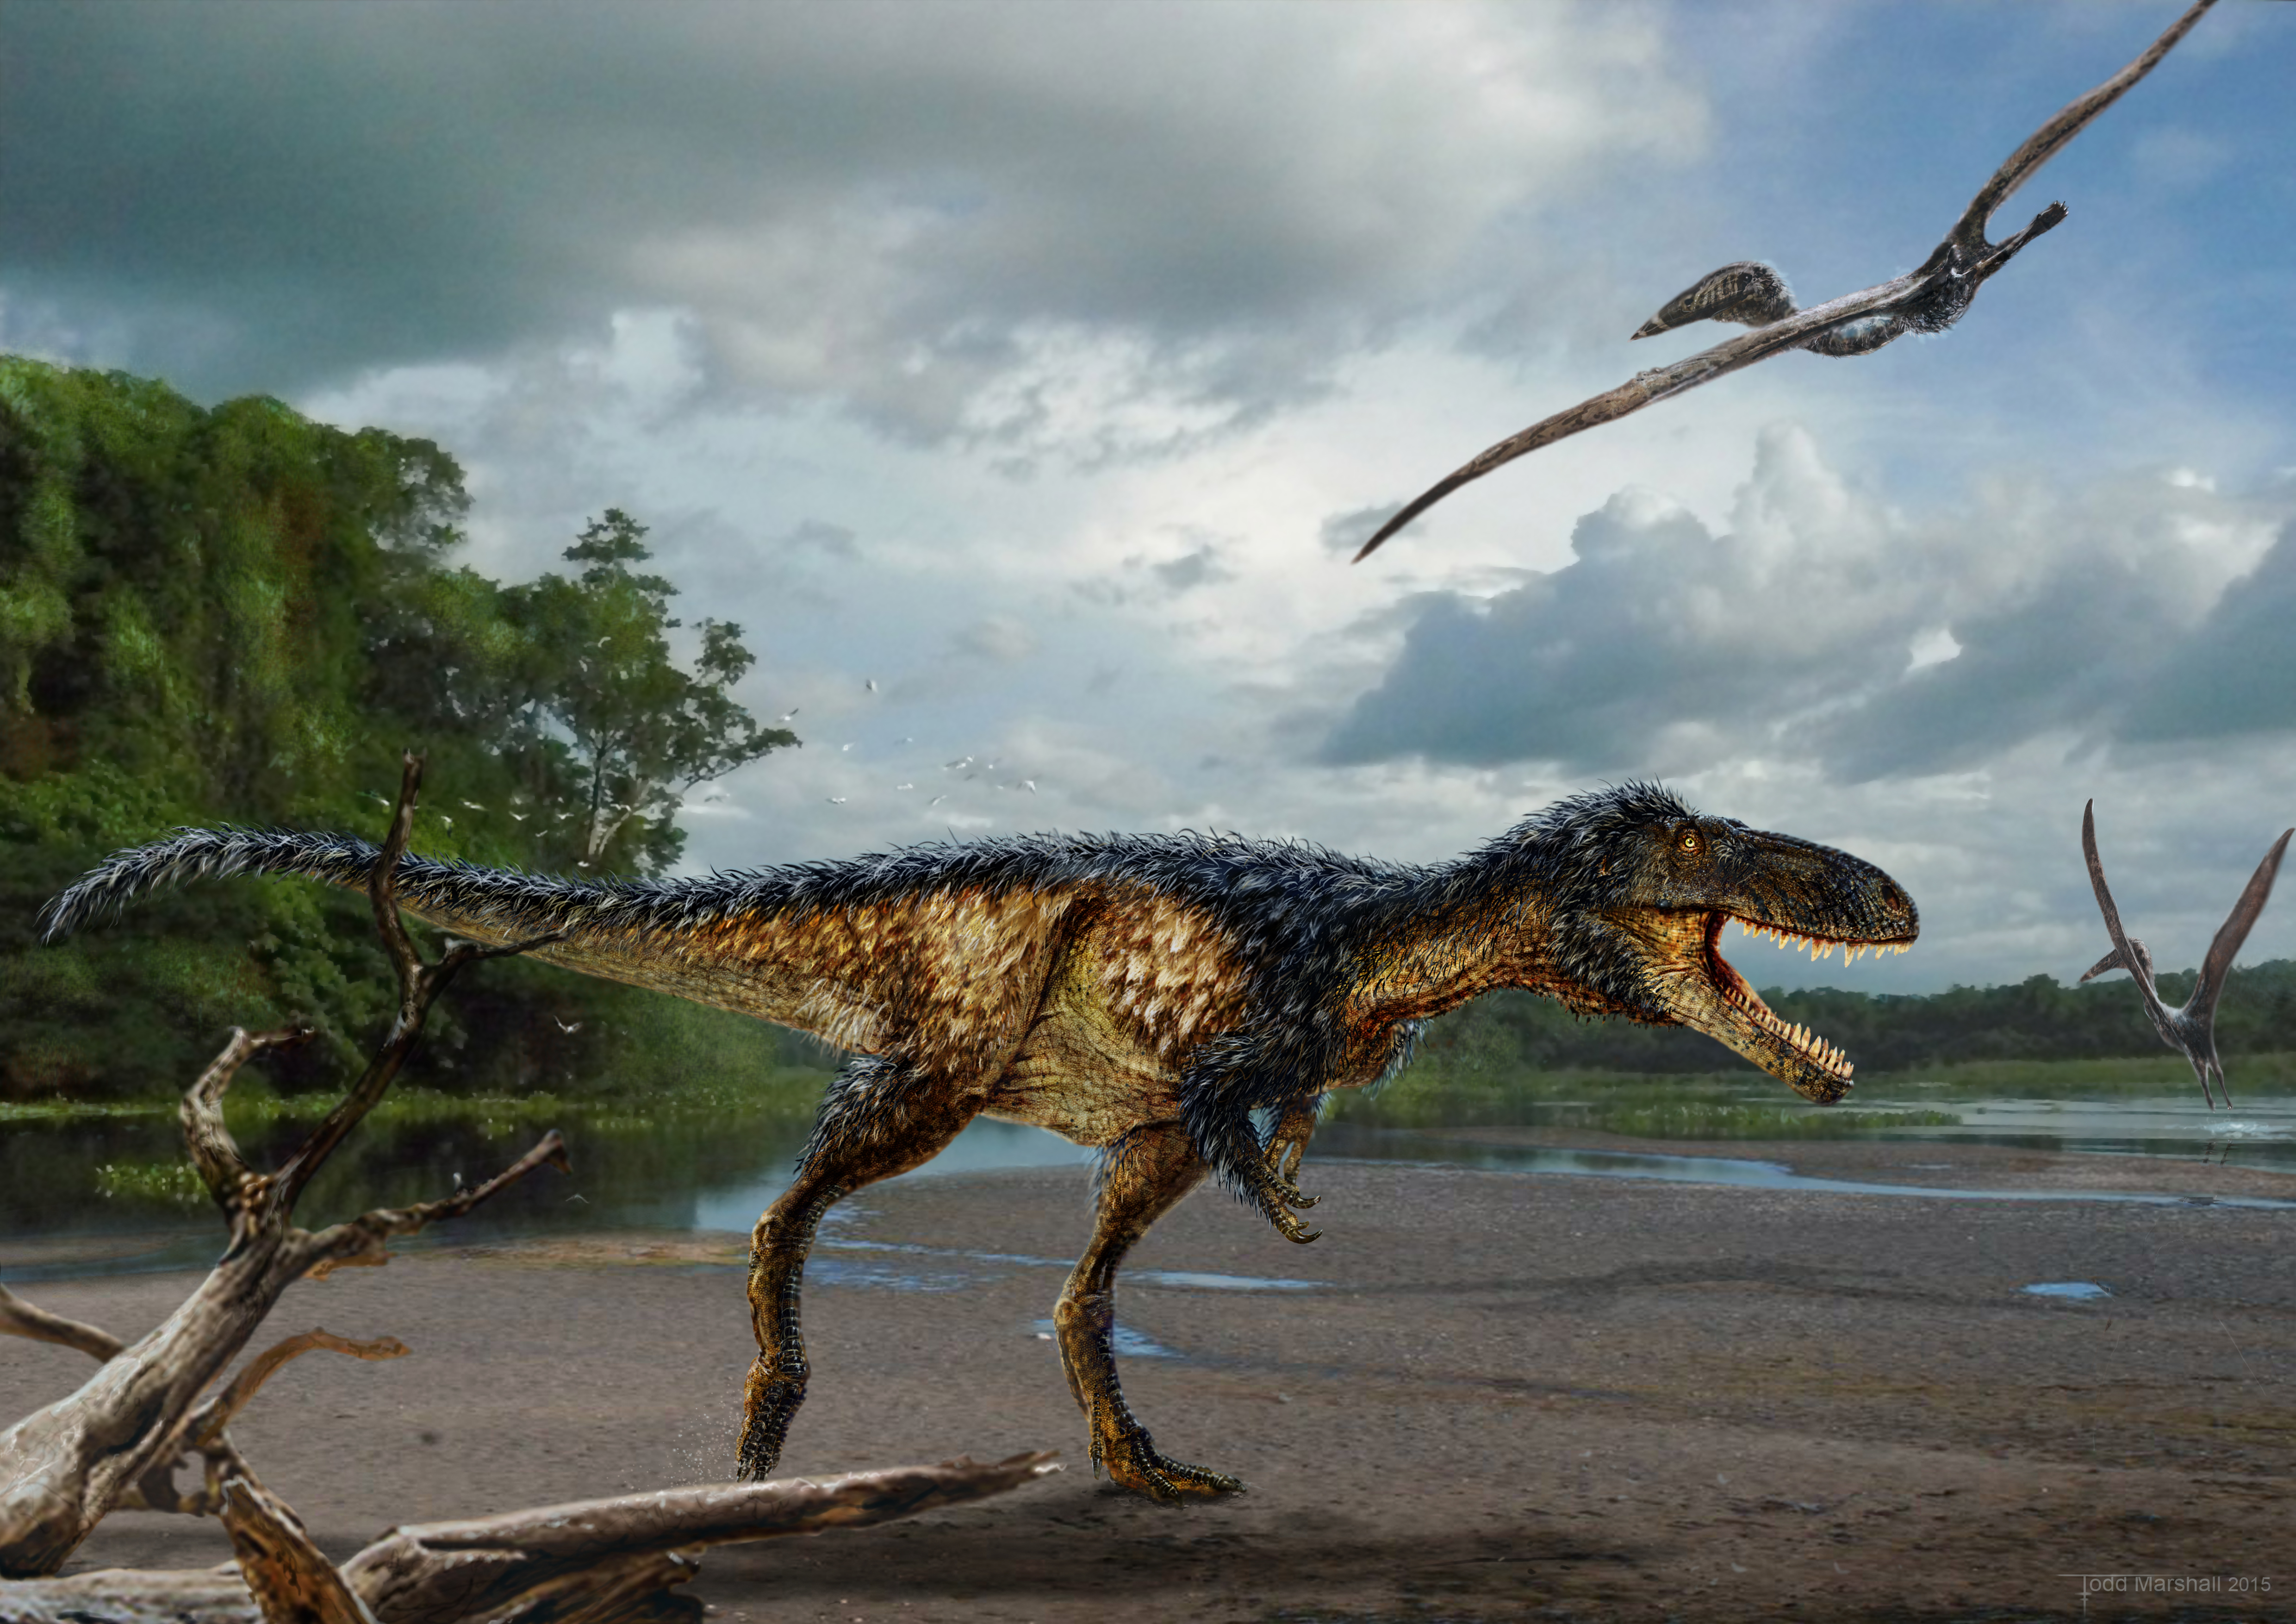 New dinosaur species in tyrannosaur family discovered